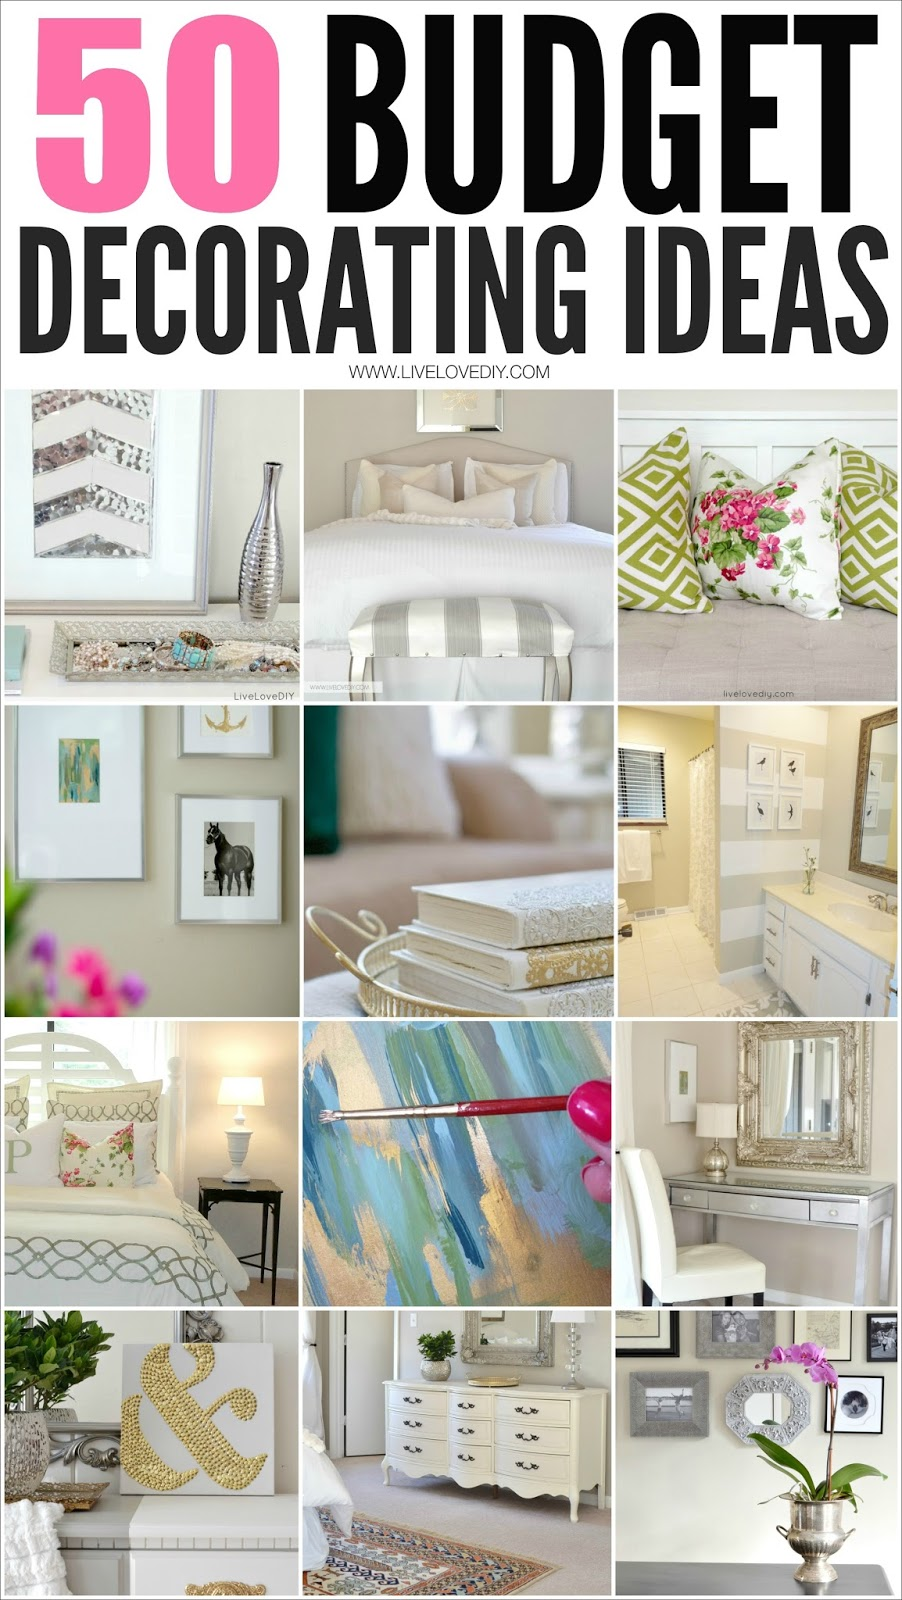 Home Decorating Ideas 2014 livelovediy: 50 budget decorating tips you should know!